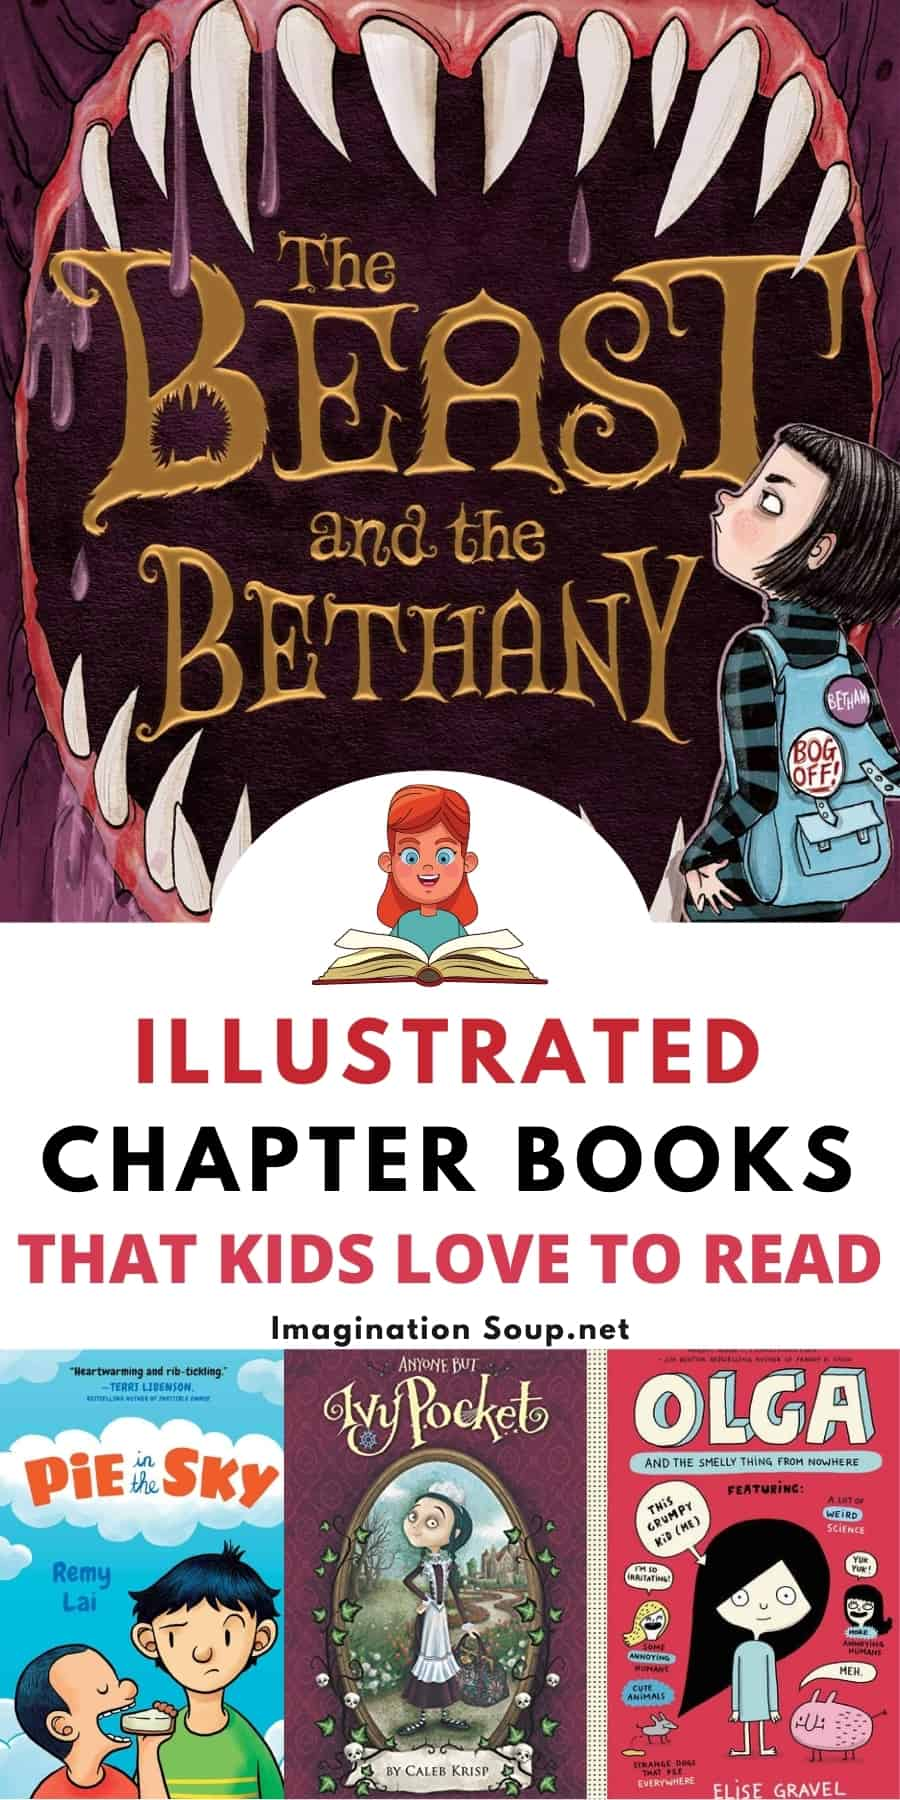 illustrated chapter books that kids love to read